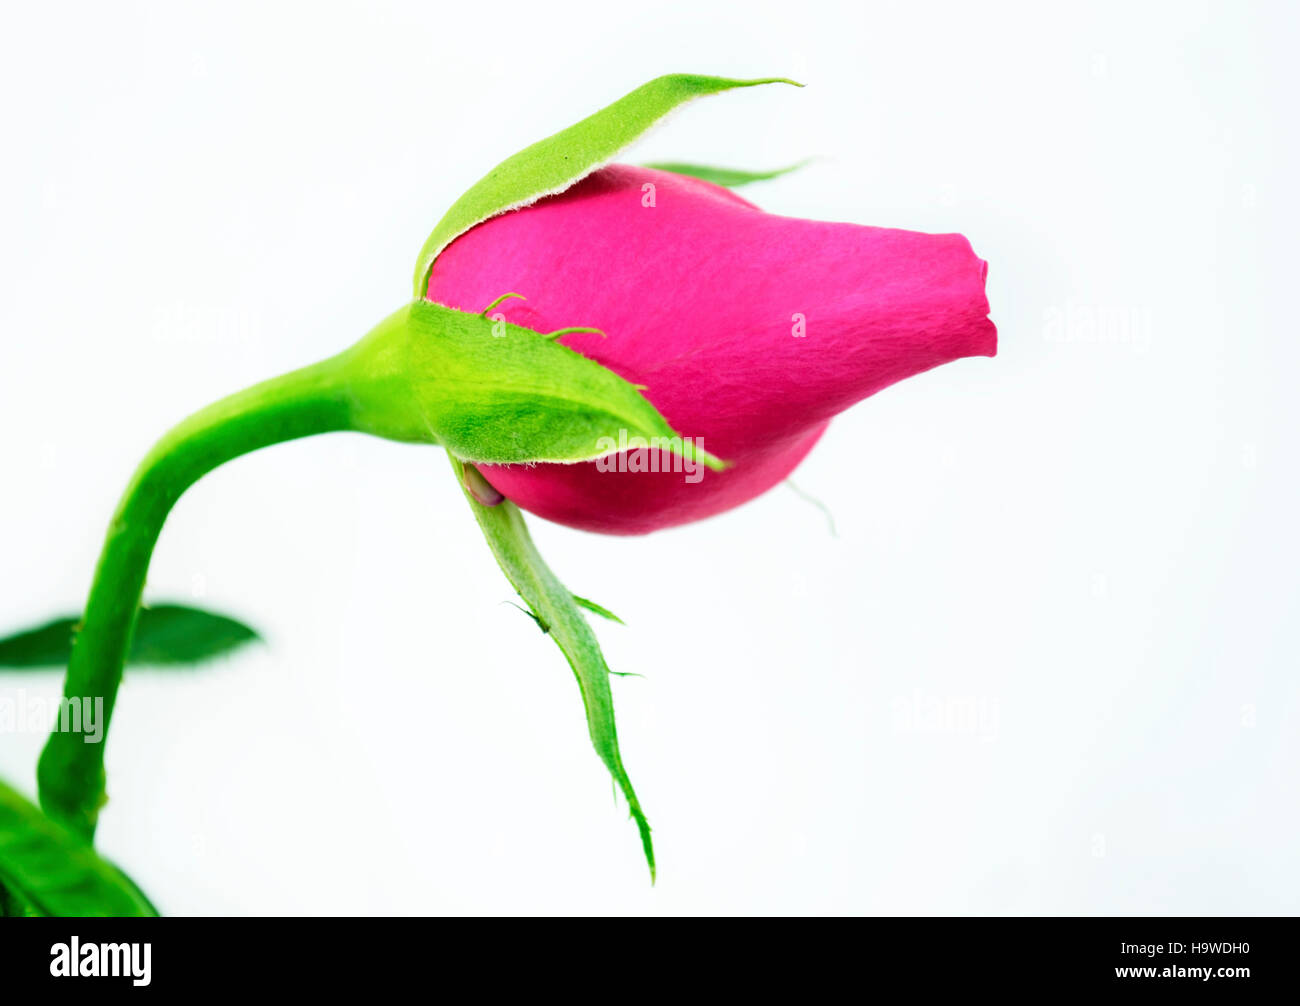 angled view of a pink bud rose - Stock Image